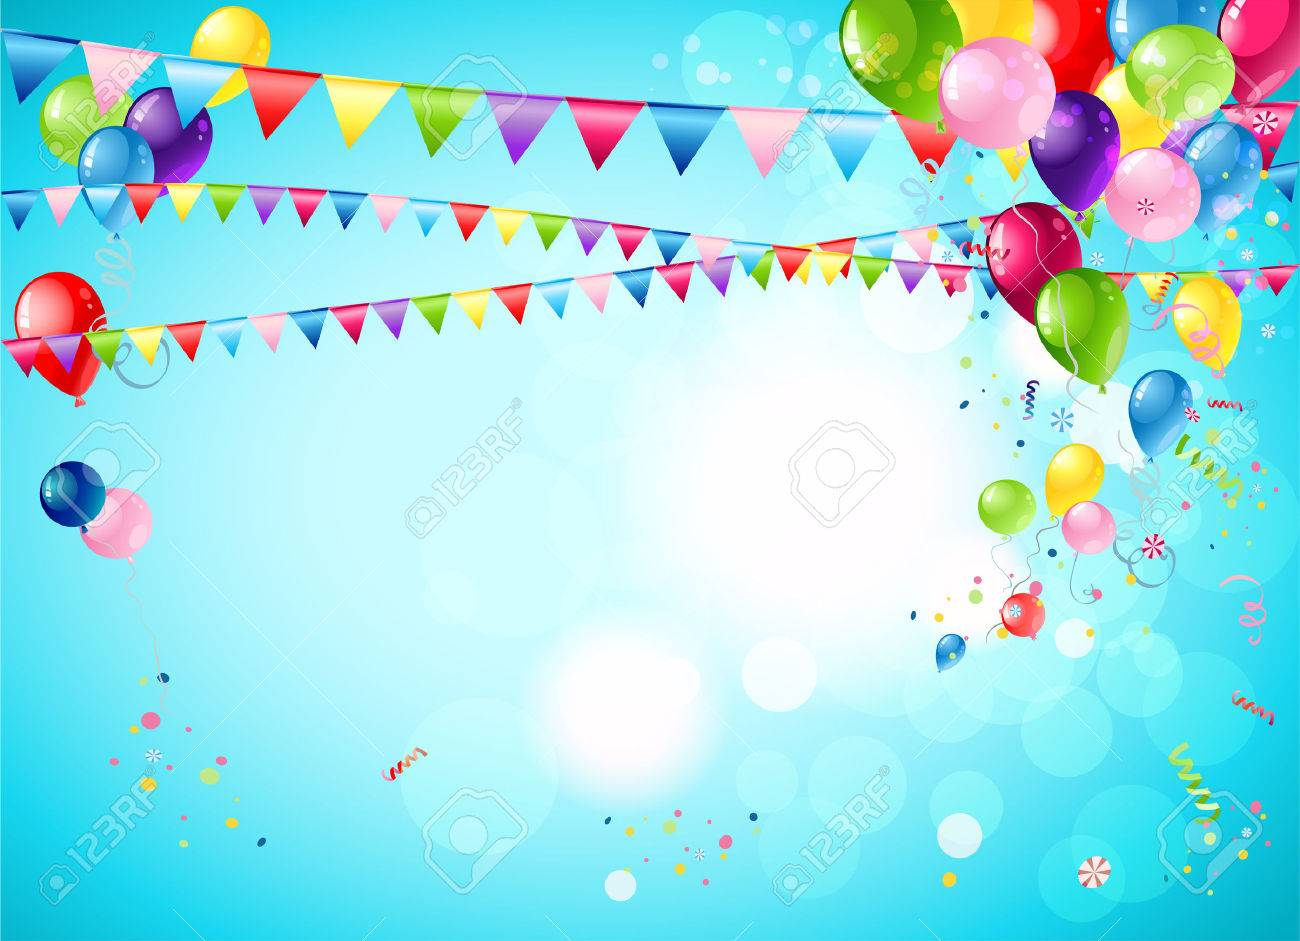 Bright festive background with balloons, flags and confetti - 41899829